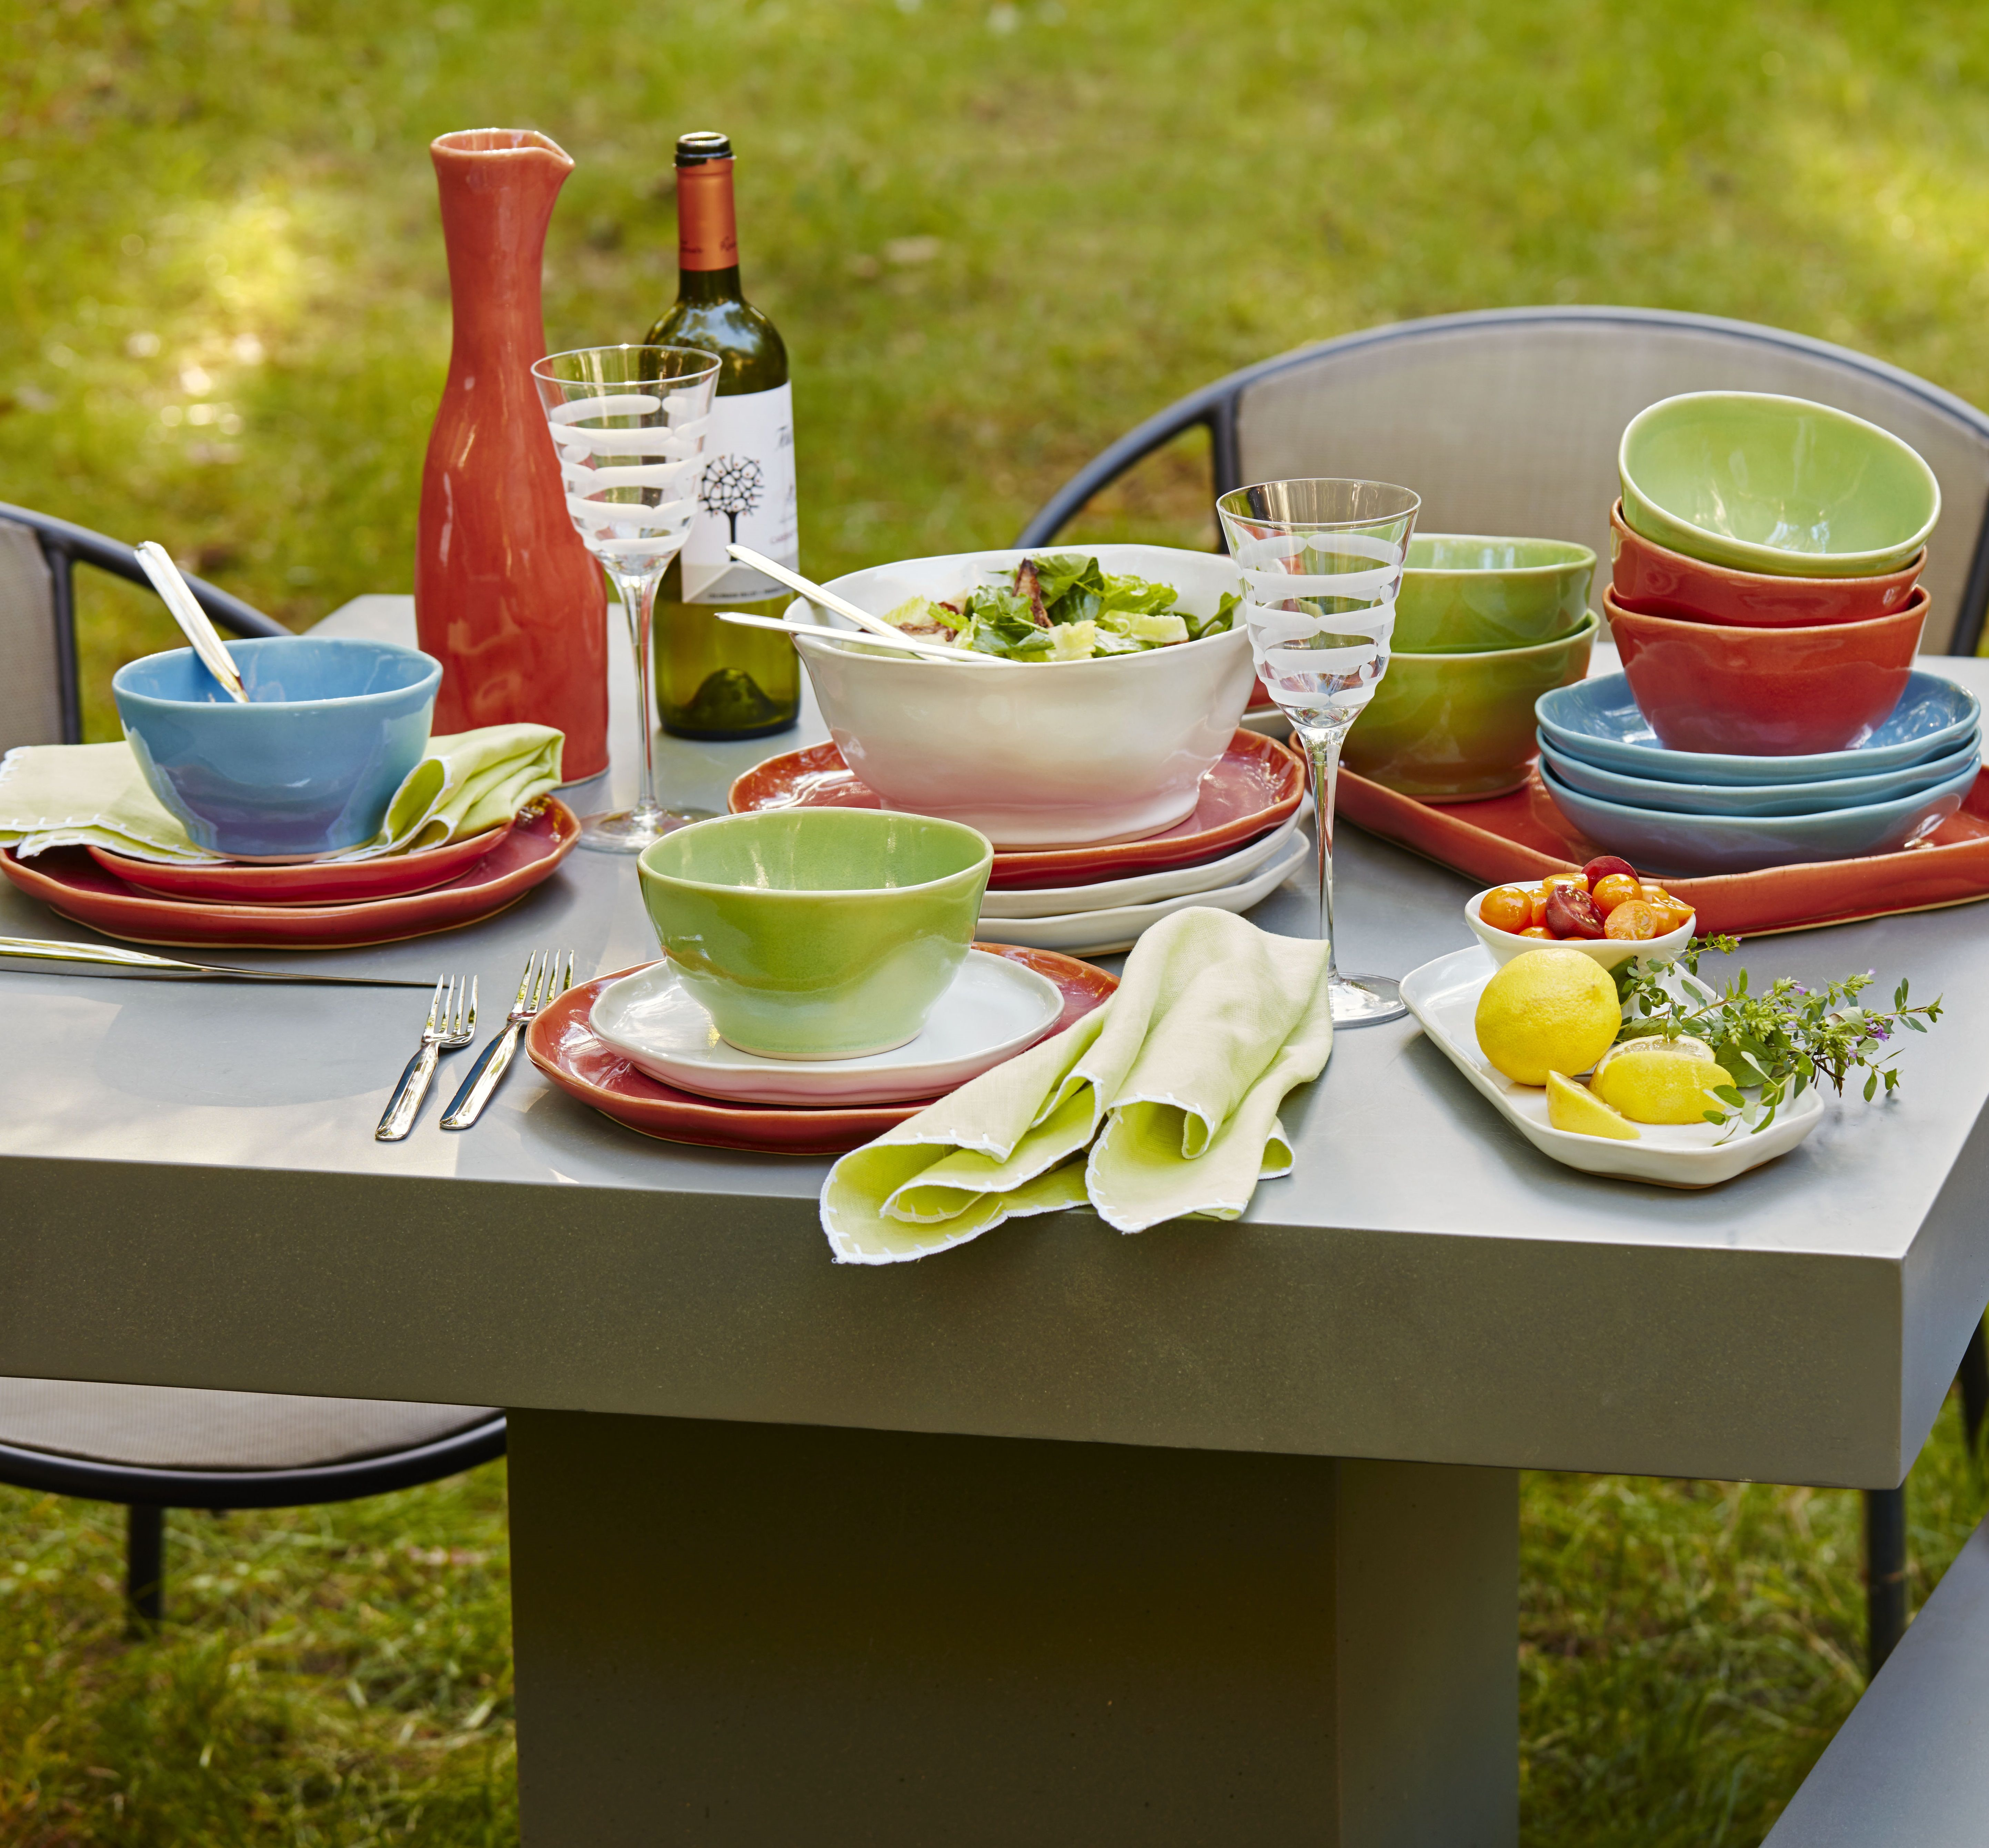 Al Fresco Entertaining   Outdoor Dining   Bright Dinnerware Accessories    Durable Plates And Bowls  